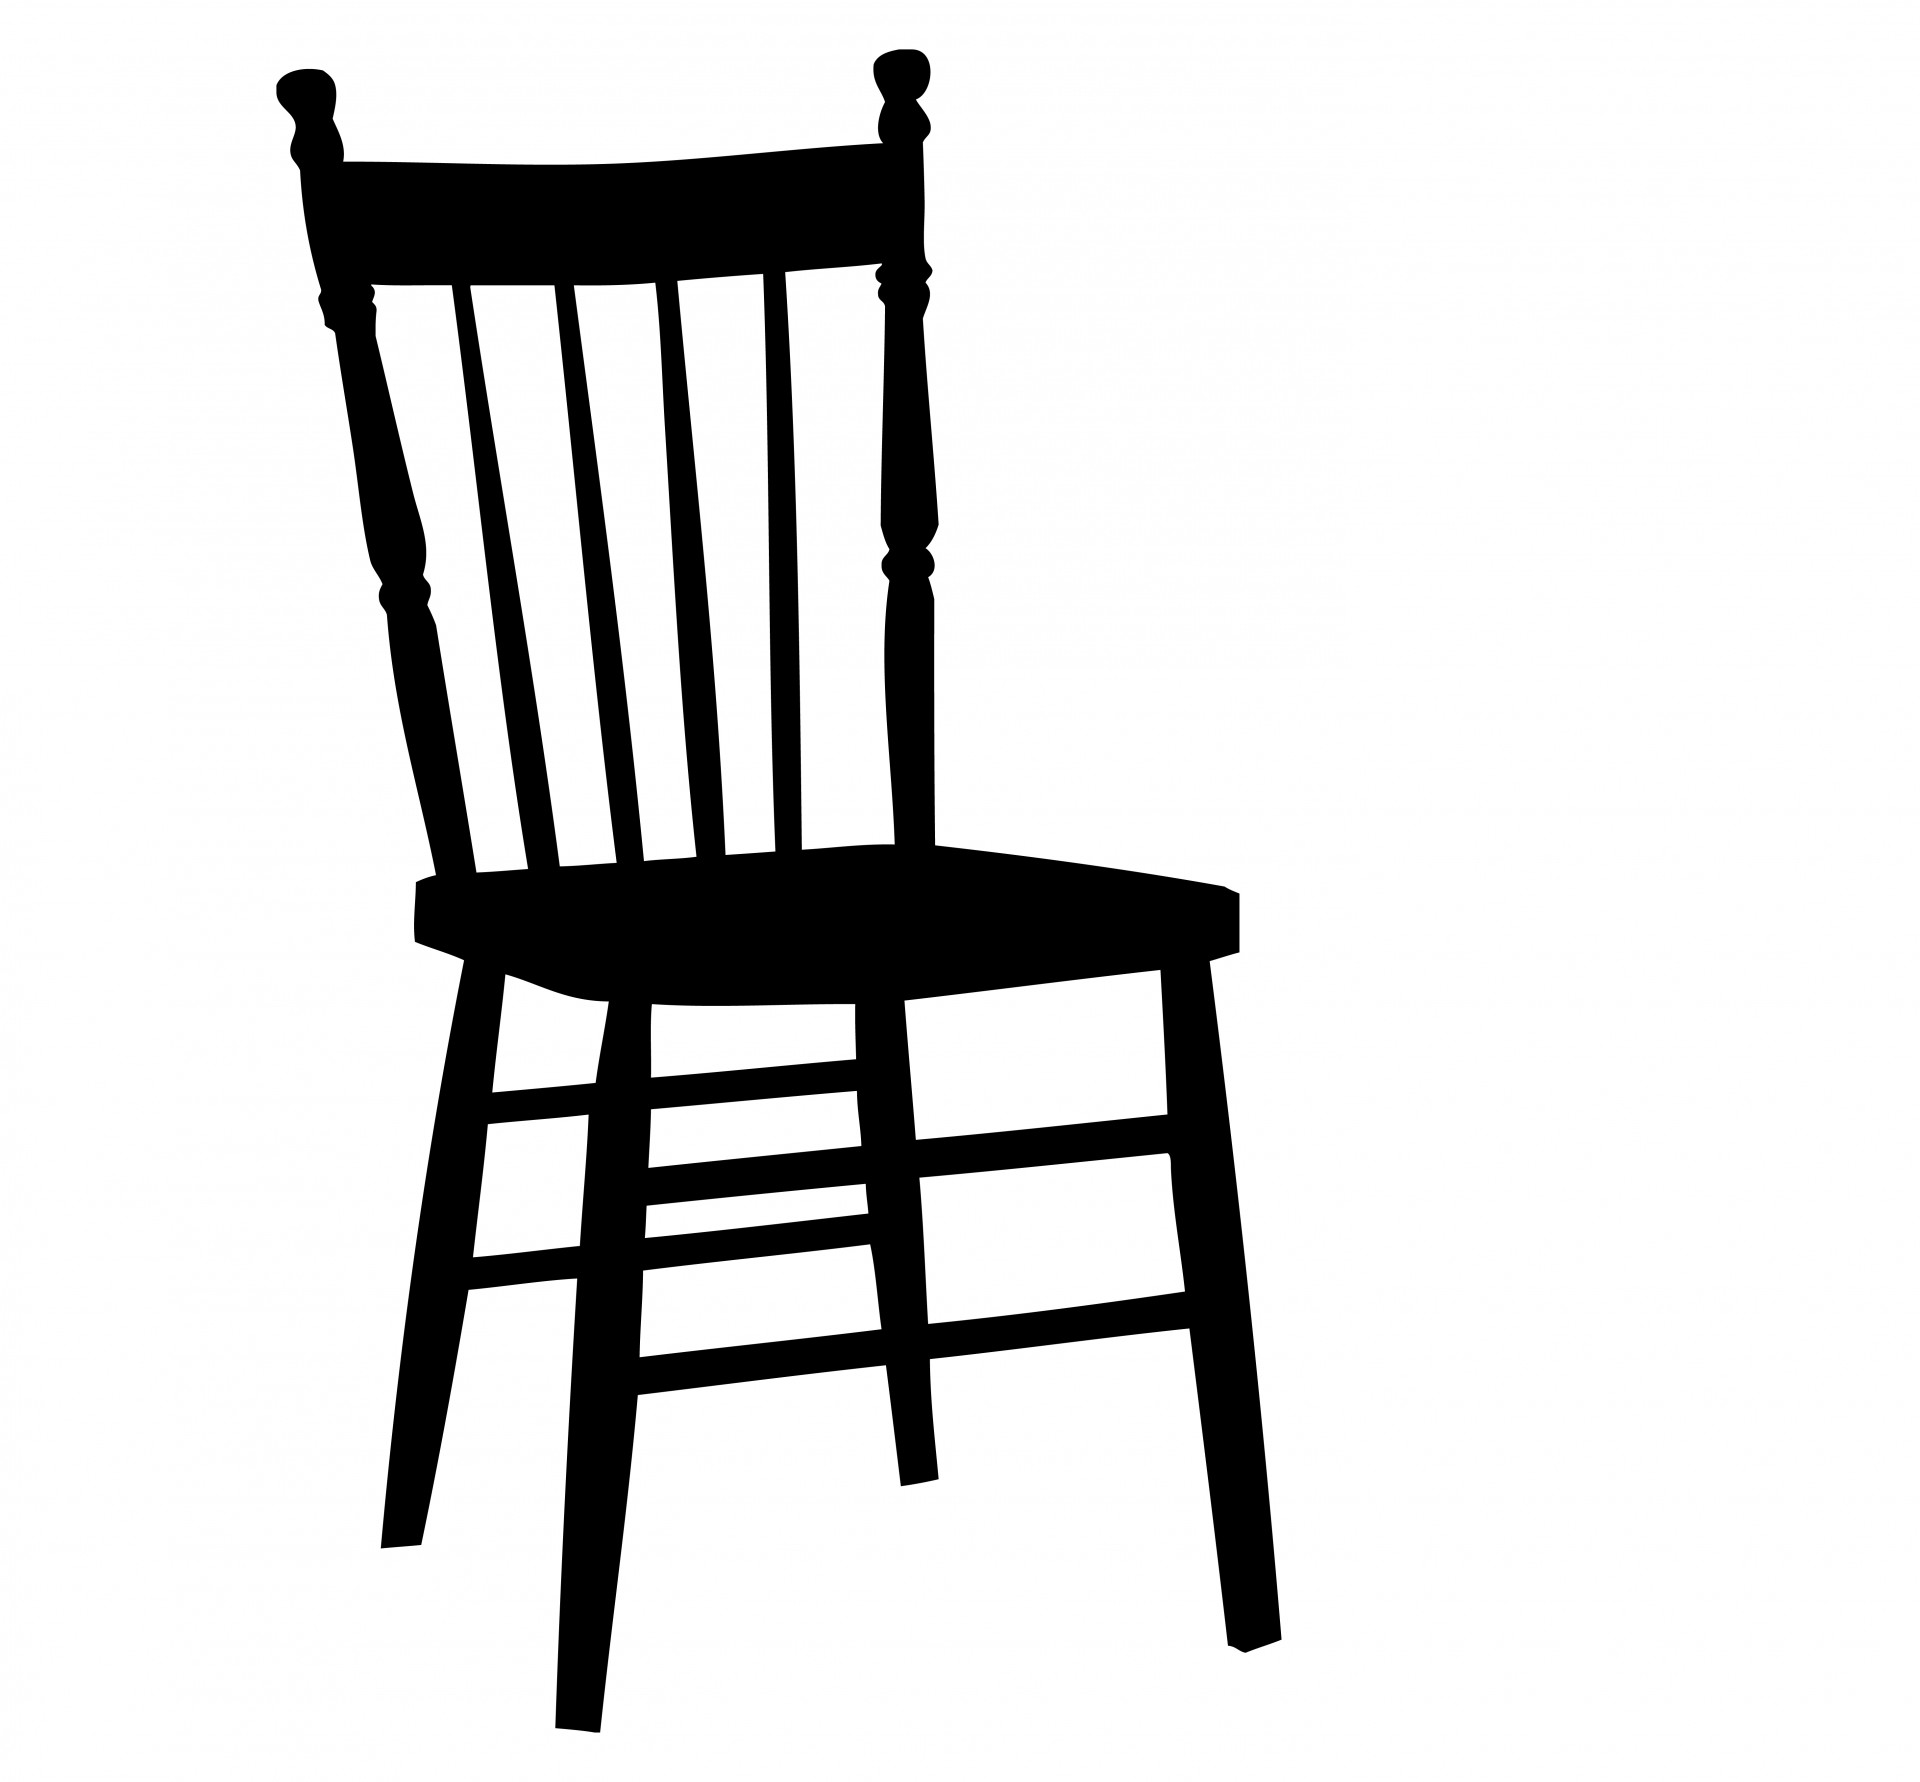 Chair and lamp clipart black and white clip art royalty free stock Table Clipart Black And White | Free download best Table Clipart ... clip art royalty free stock